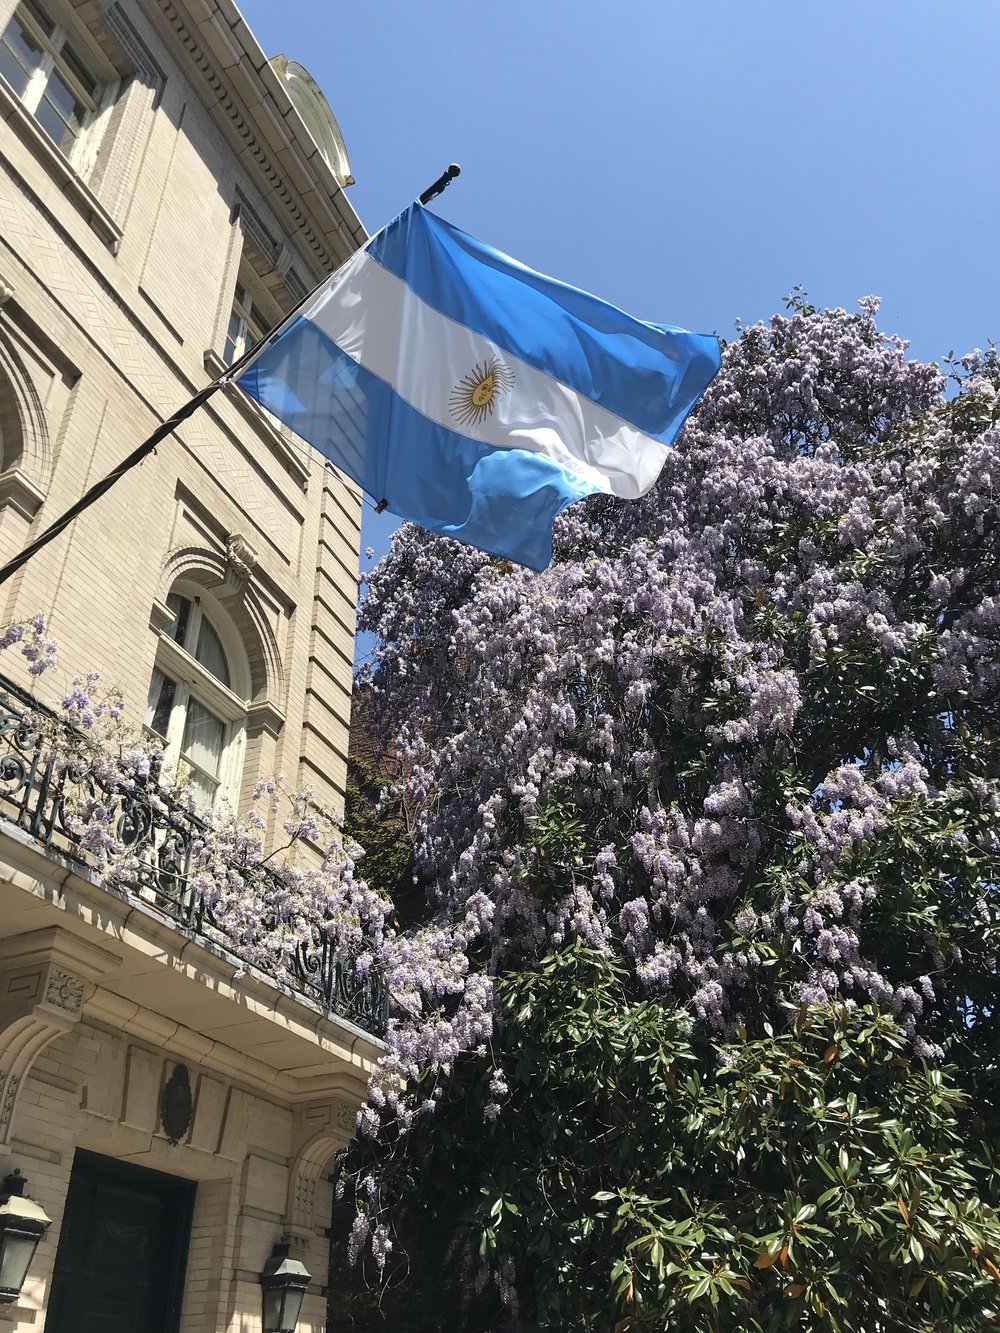 The Embassy of Argentina.